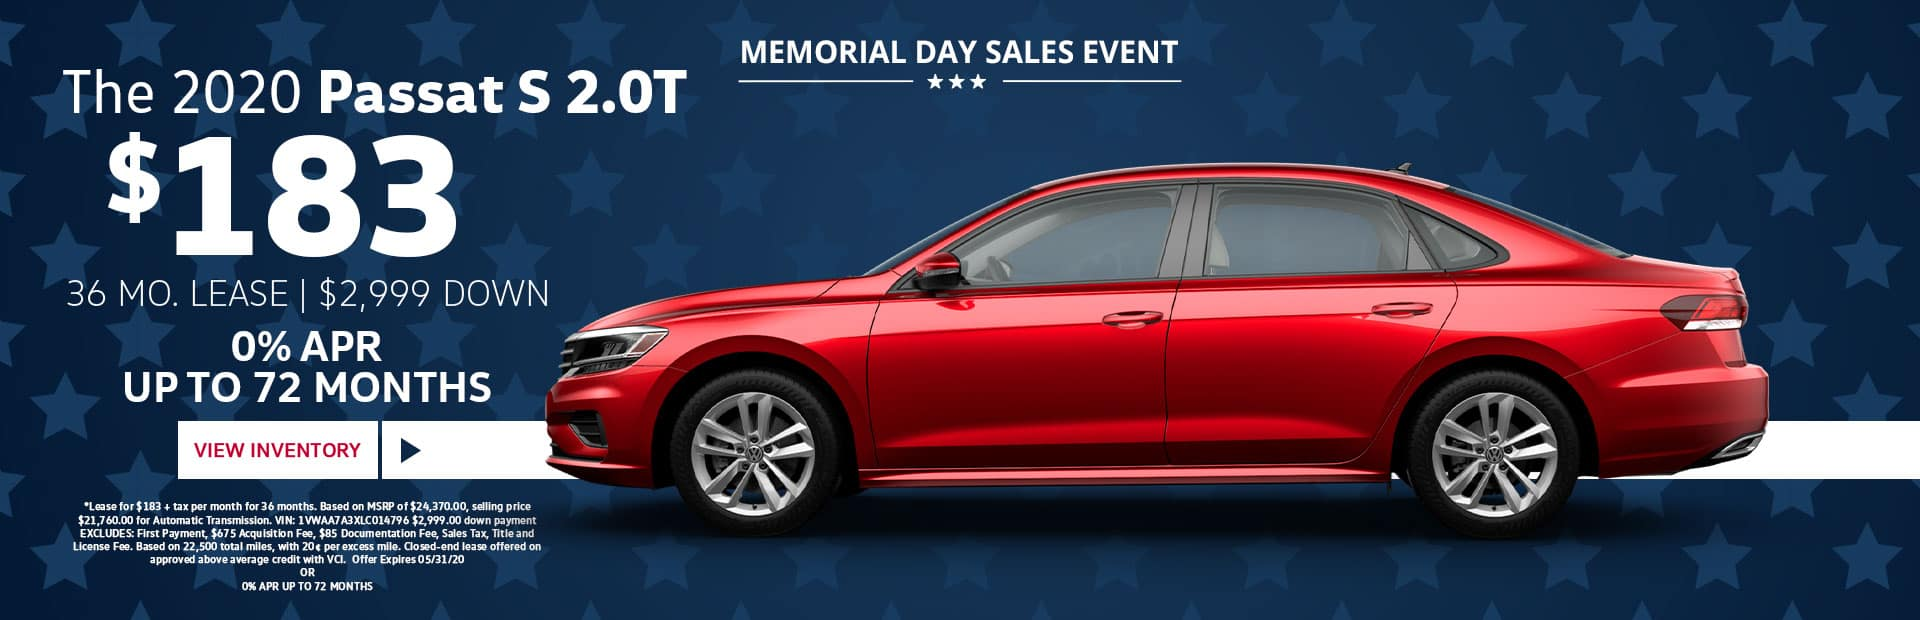 2020 vw passat s memorial day lease special